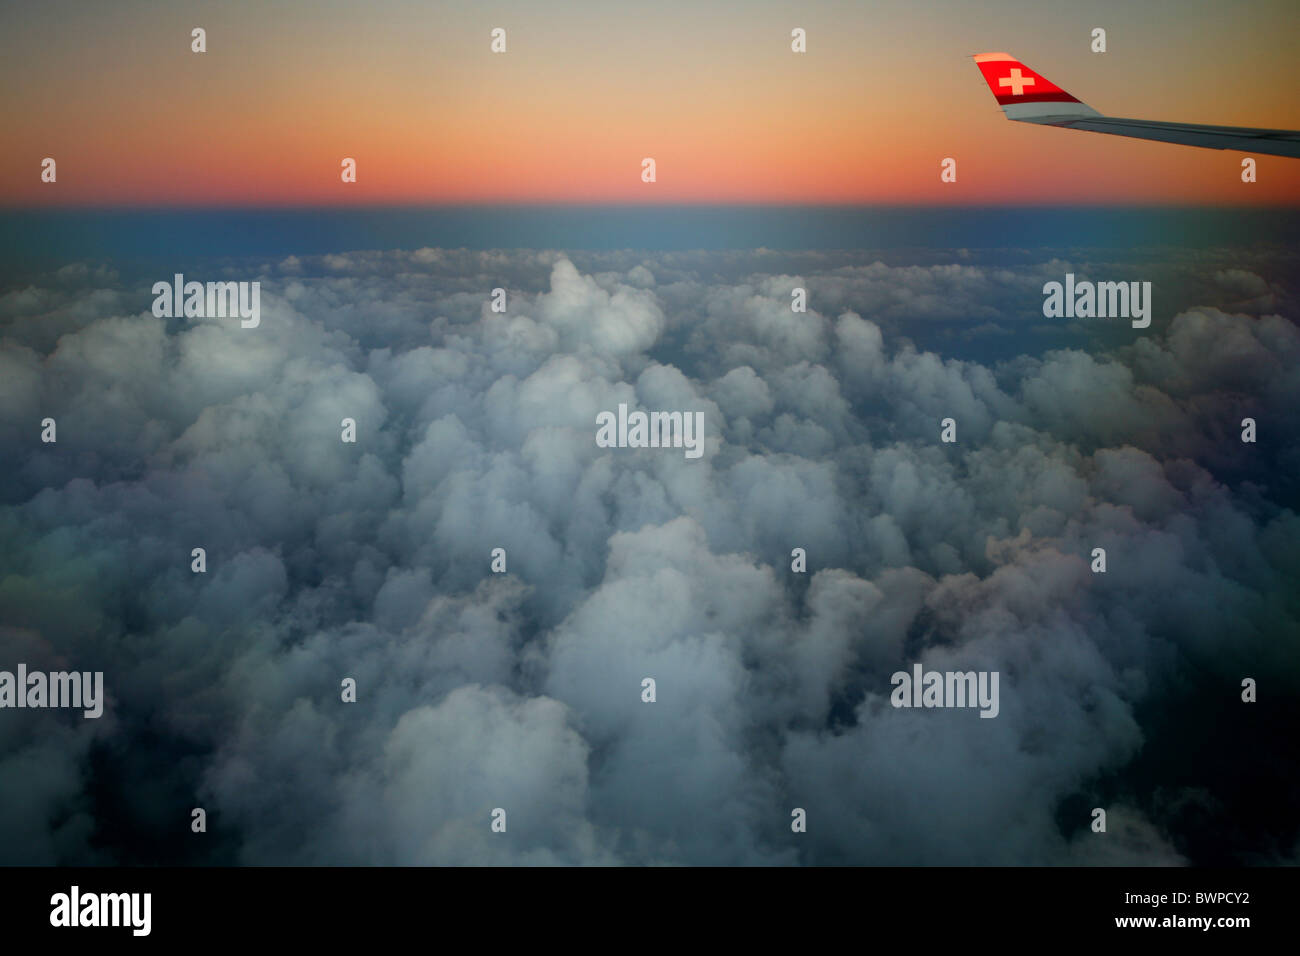 Namibia Africa Zurich airport flight Summer 2007 Africa clouds twilight dusk dawn aeroplane aircraft plane - Stock Image